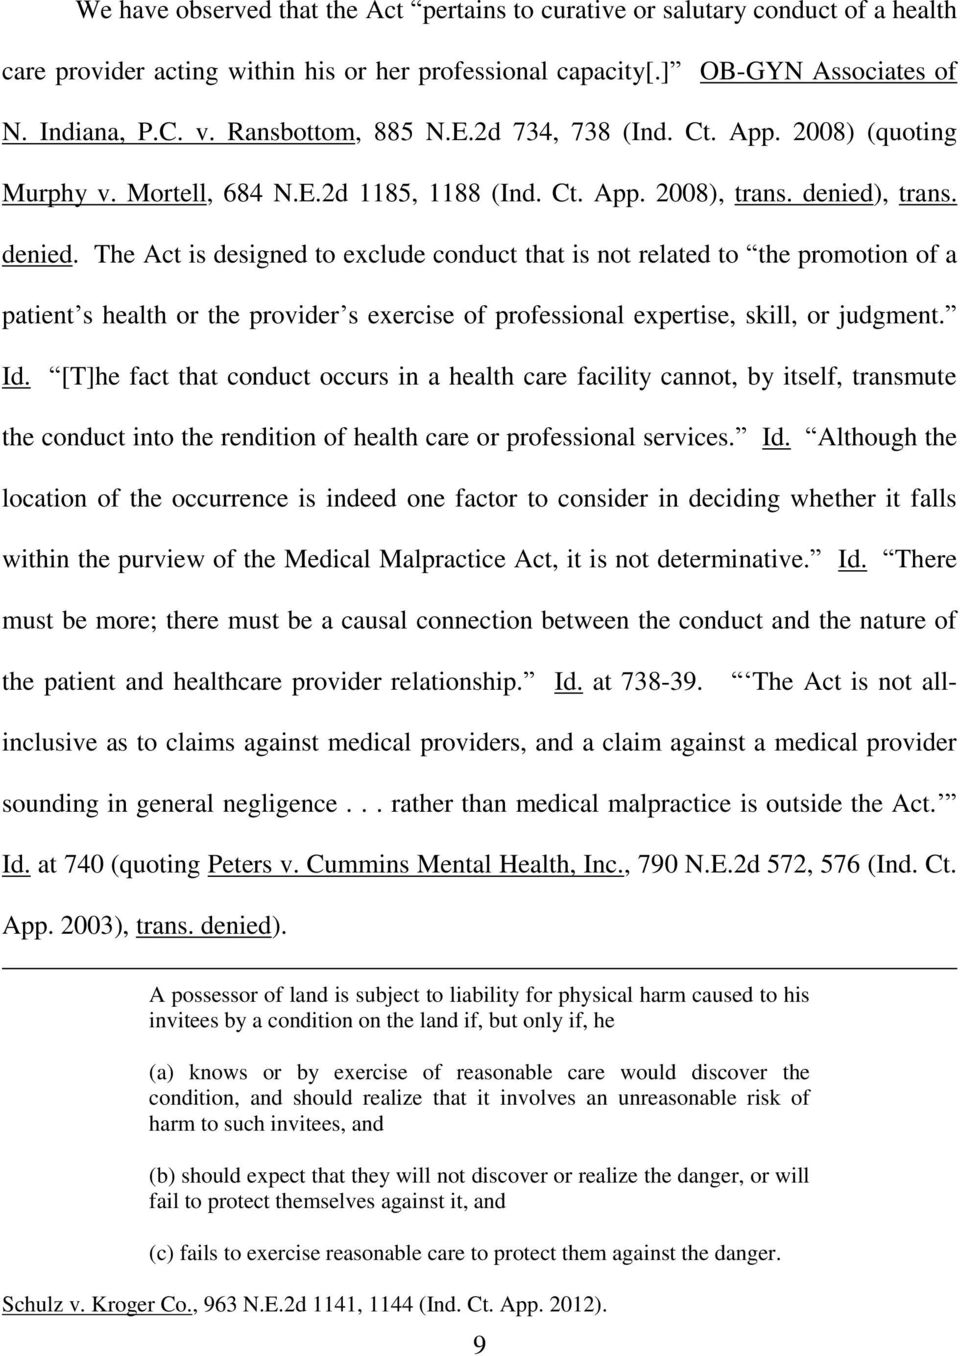 , trans. denied. The Act is designed to exclude conduct that is not related to the promotion of a patient s health or the provider s exercise of professional expertise, skill, or judgment. Id.